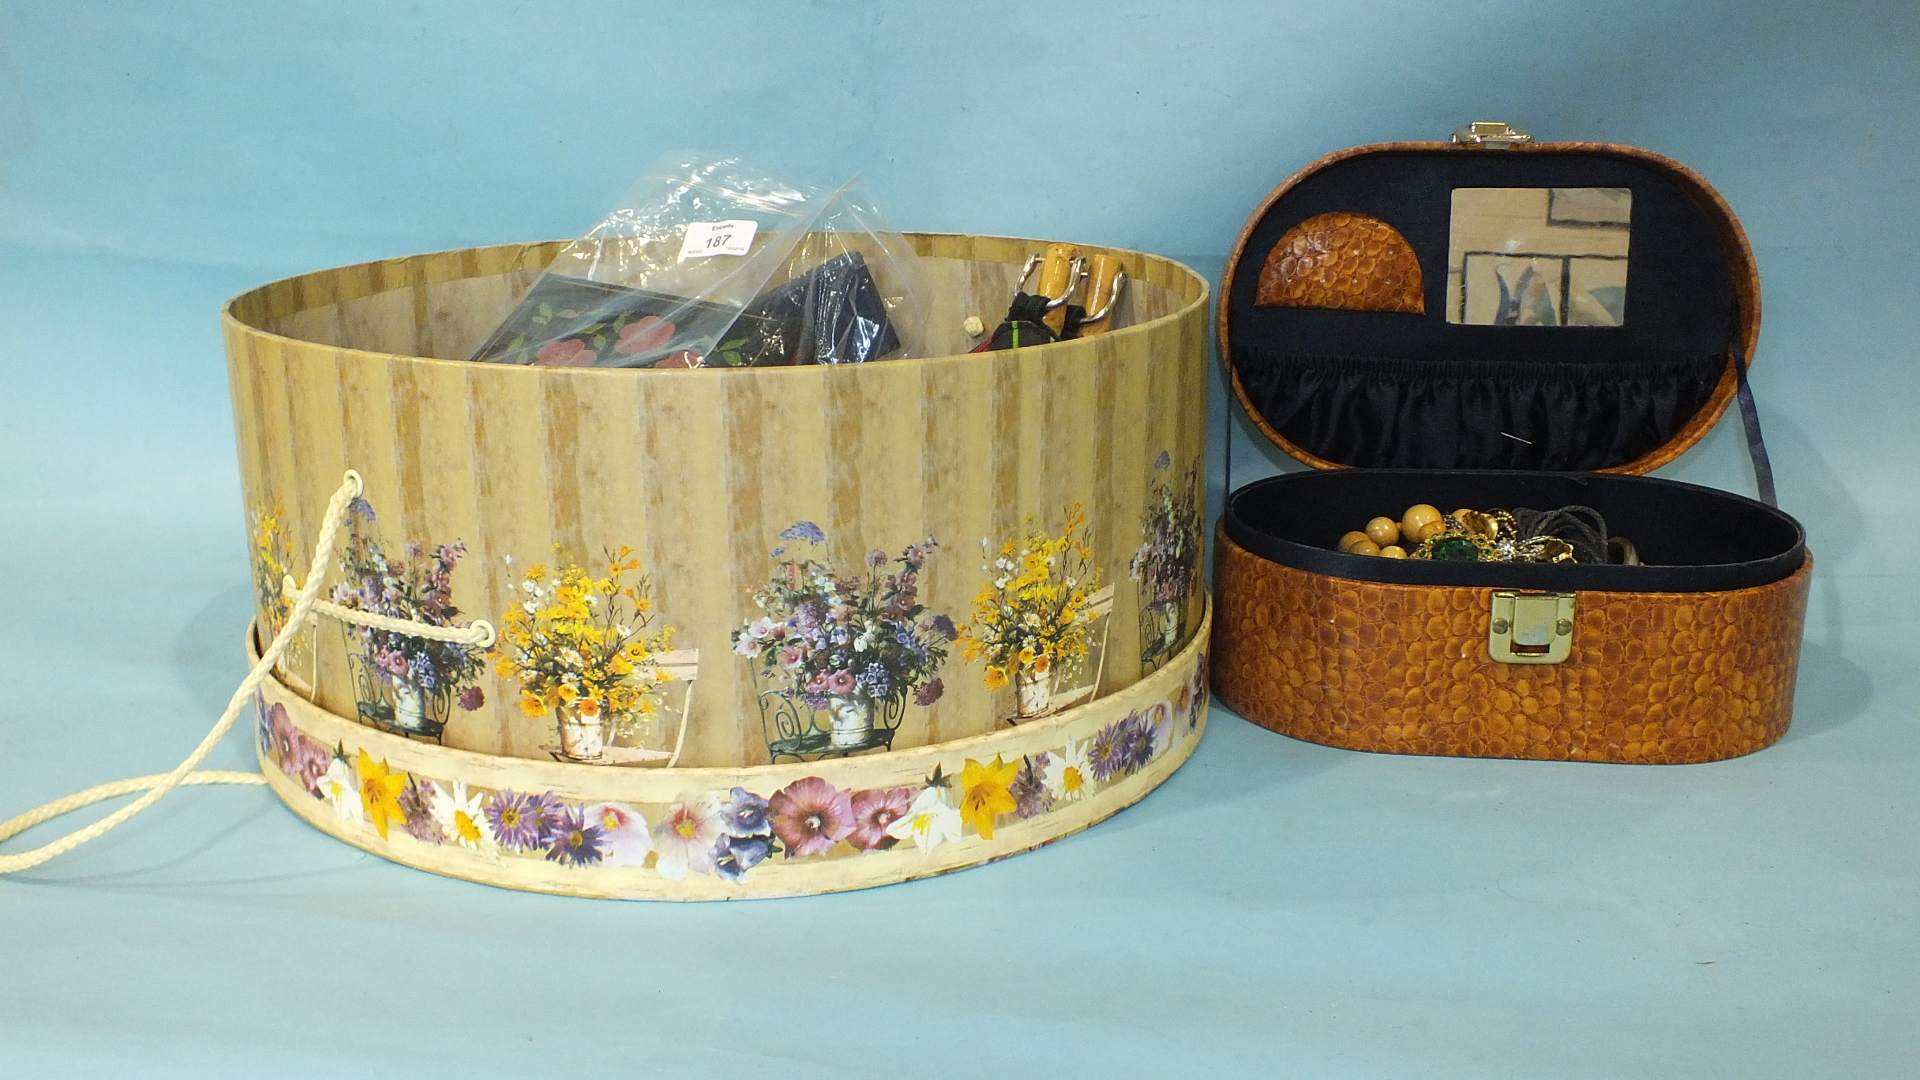 Lot 187 - A silver RAF sweetheart brooch and a large quantity of costume jewellery, etc, in a hat box.